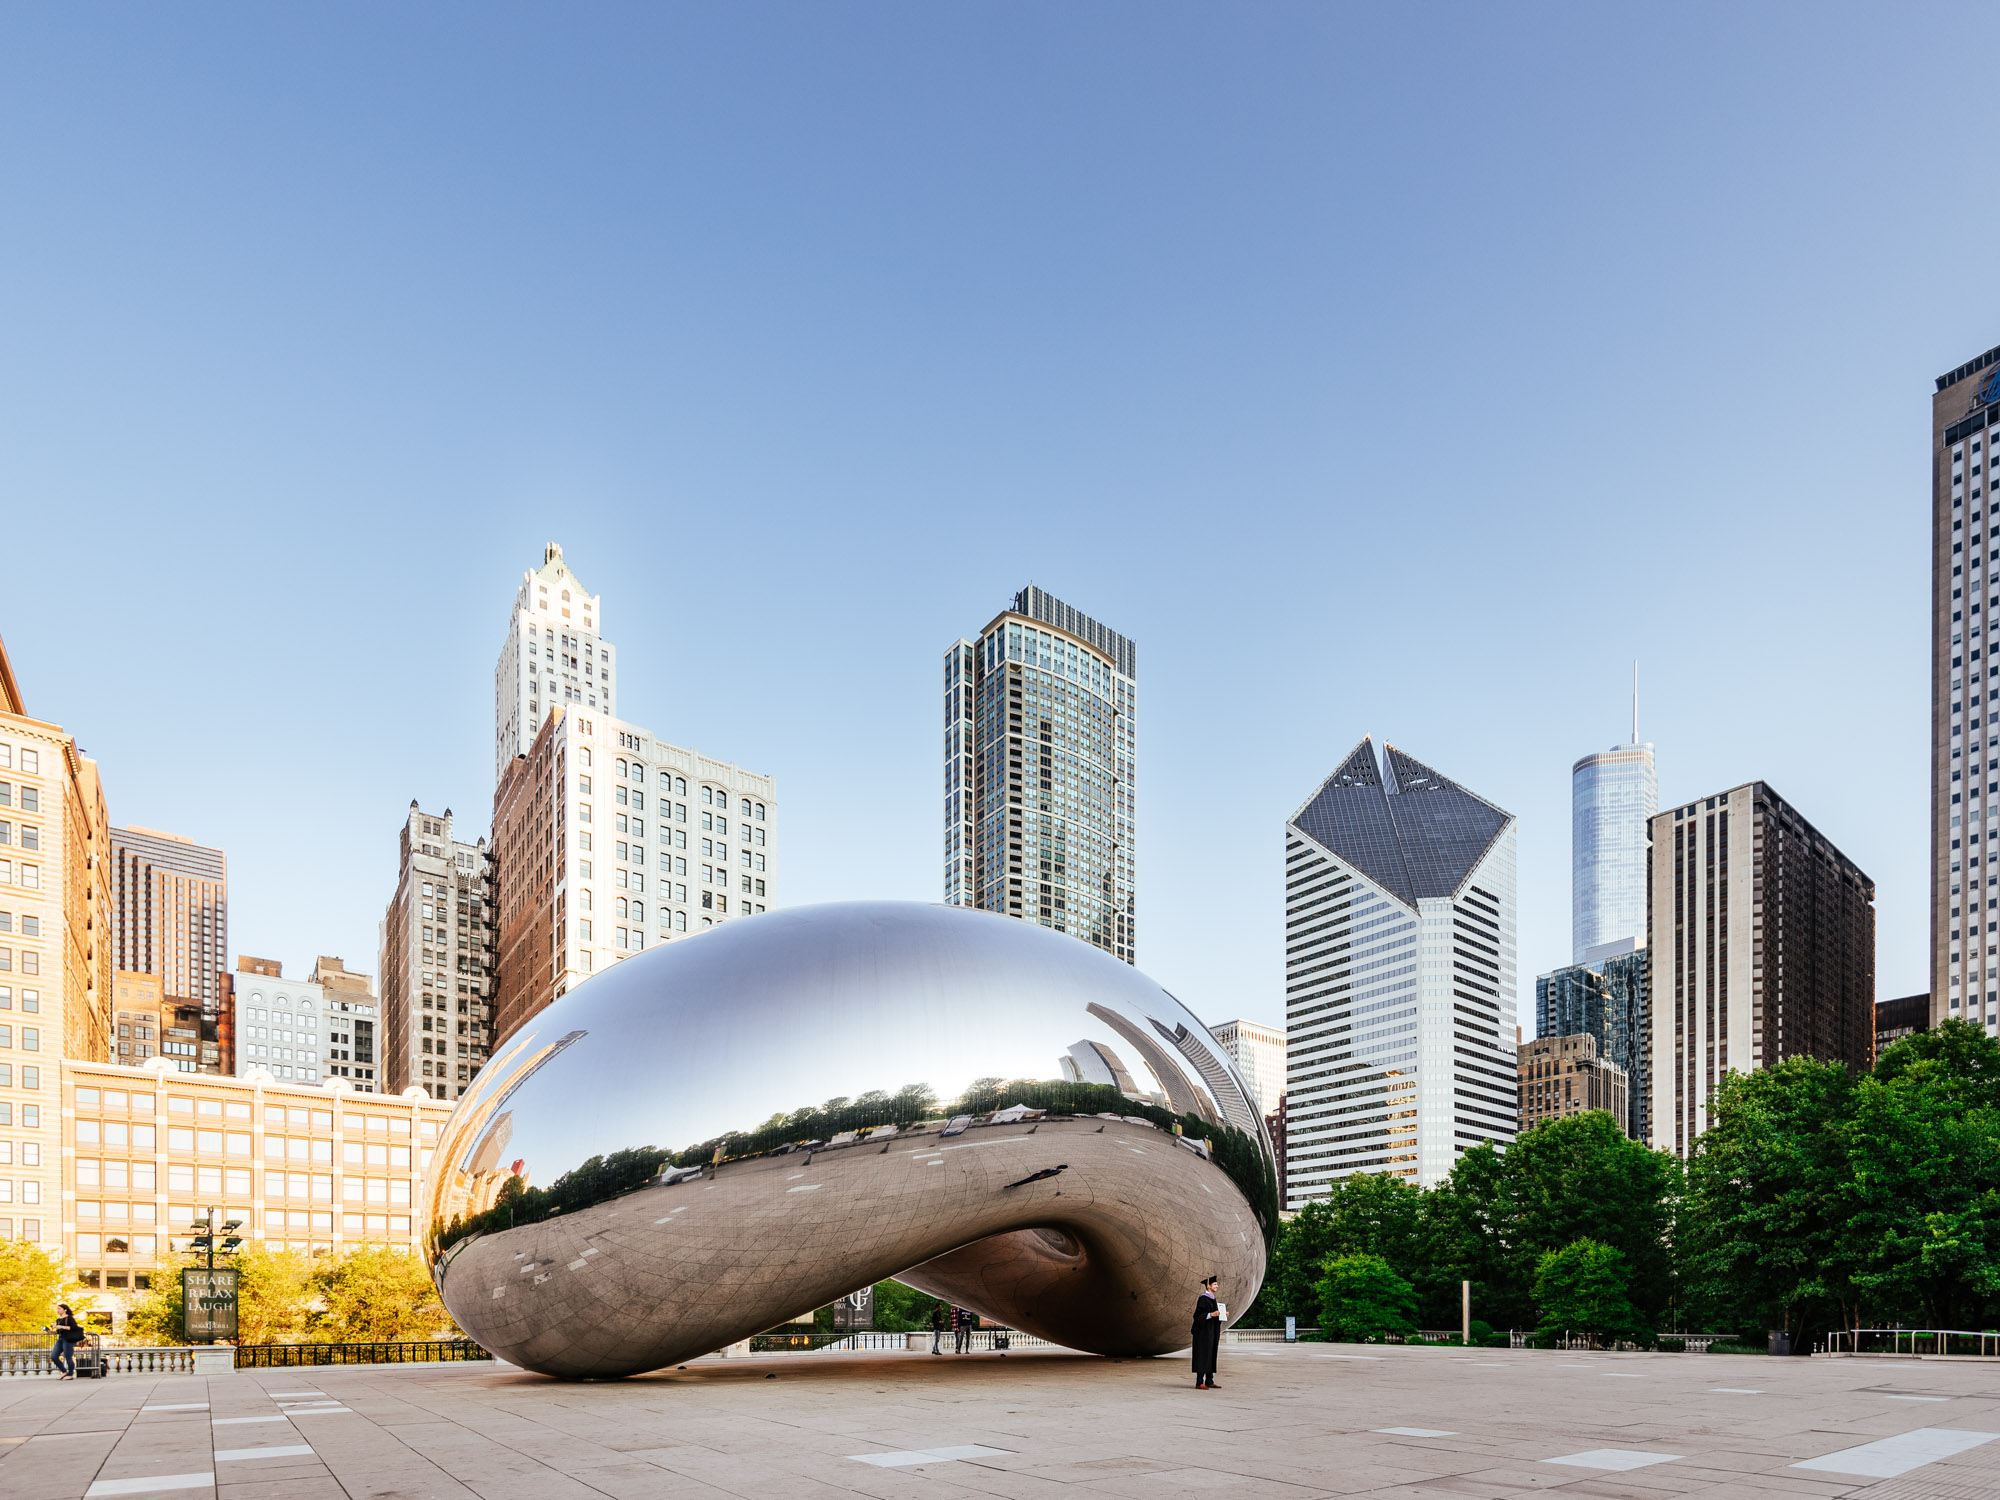 Jeff On The Road - Travel - Chicago - Millenium Park - Cloud Gate by Anish Kapoor - All photos are under Copyright © 2017 Jeff Frenette Photography / dezjeff. To use the photos, please contact me at dezjeff@me.com.